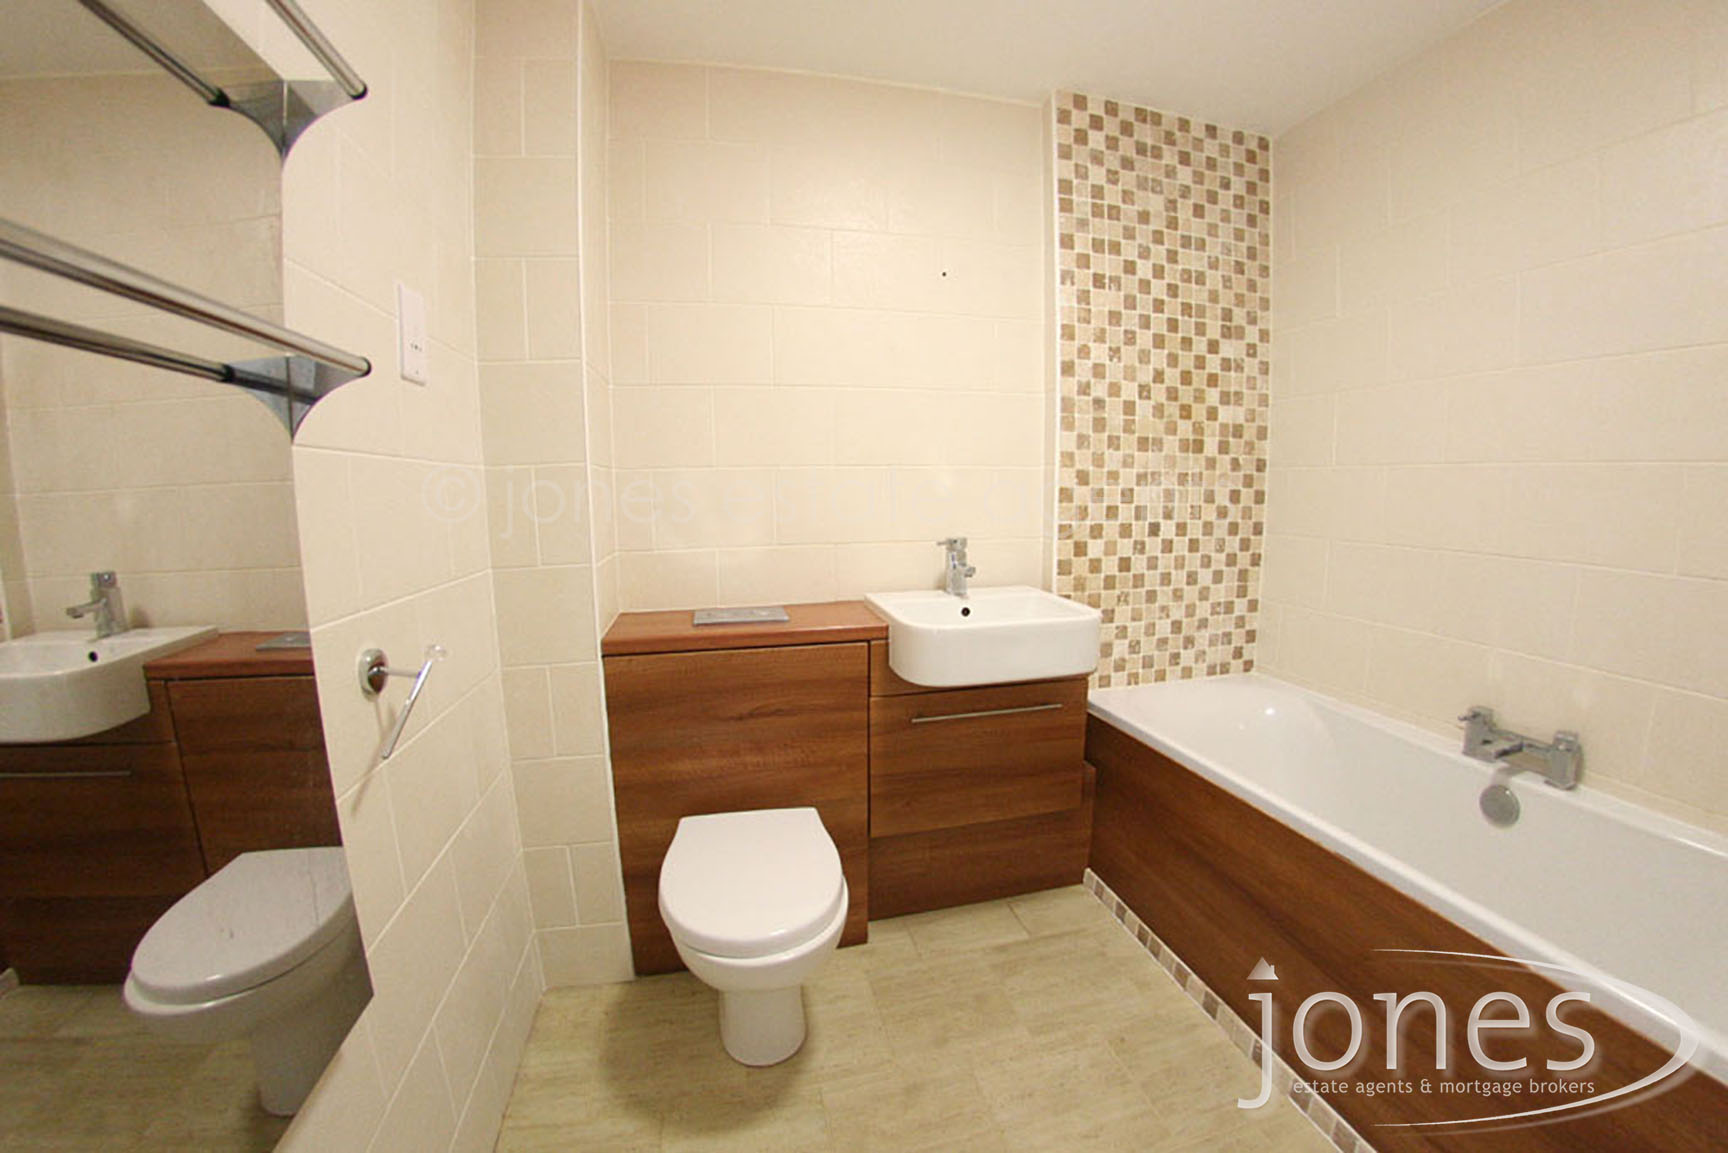 Home for Sale Let - Photo 07 York Apartments, Thornaby, Stockton on Tees,TS17 0AS